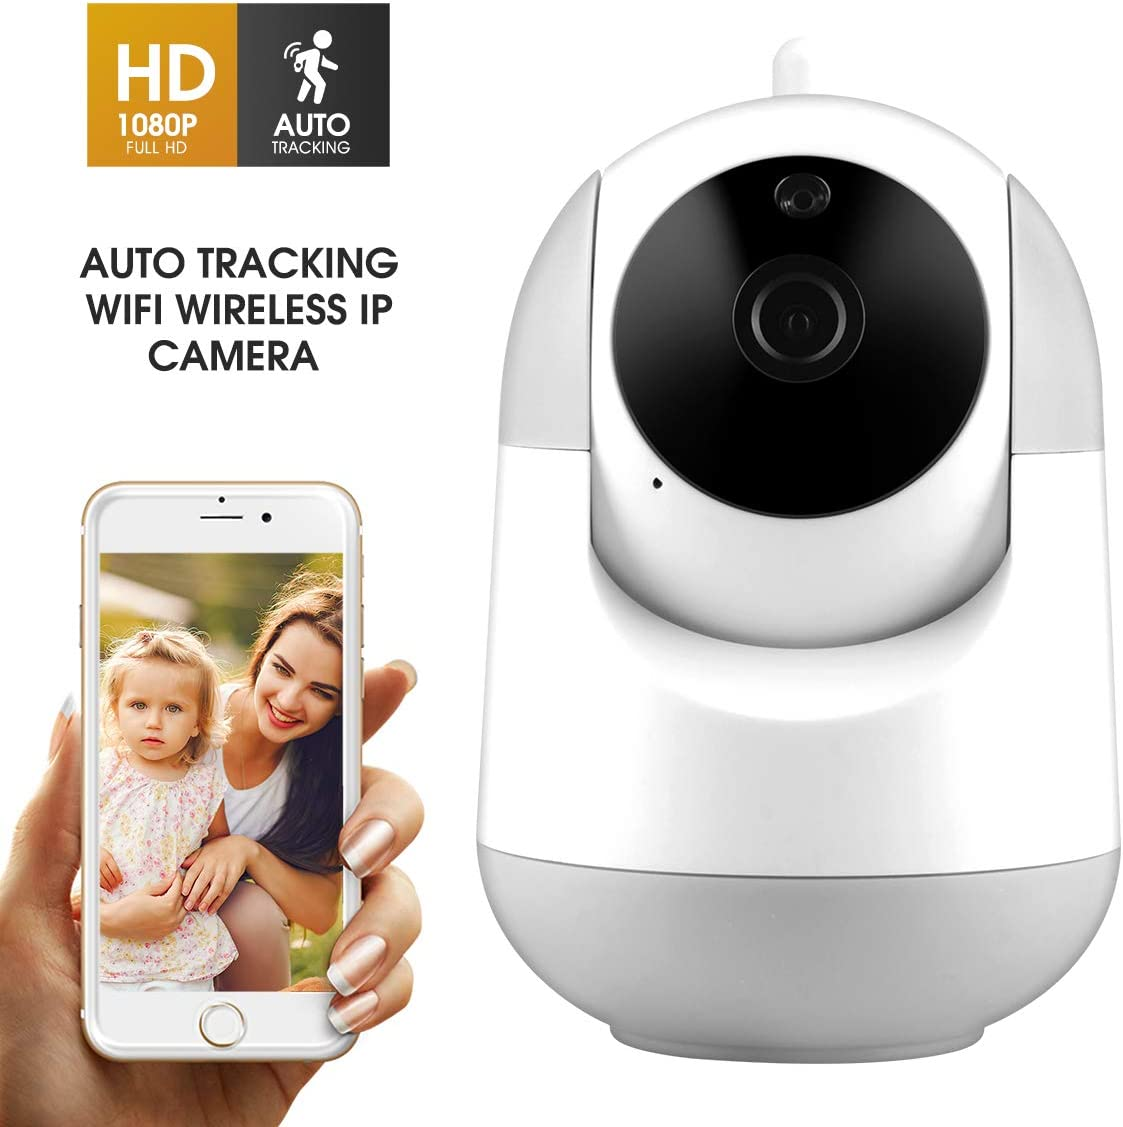 WiFi IP Camera 1080P FHD with Smart Night Vision Motion Detection 2 Way Audio Pan Tilt Zoom 2.4Ghz Wireless Home Security Surveillance Dome Camera for Baby,Pet,Elder,Nanny Monitor